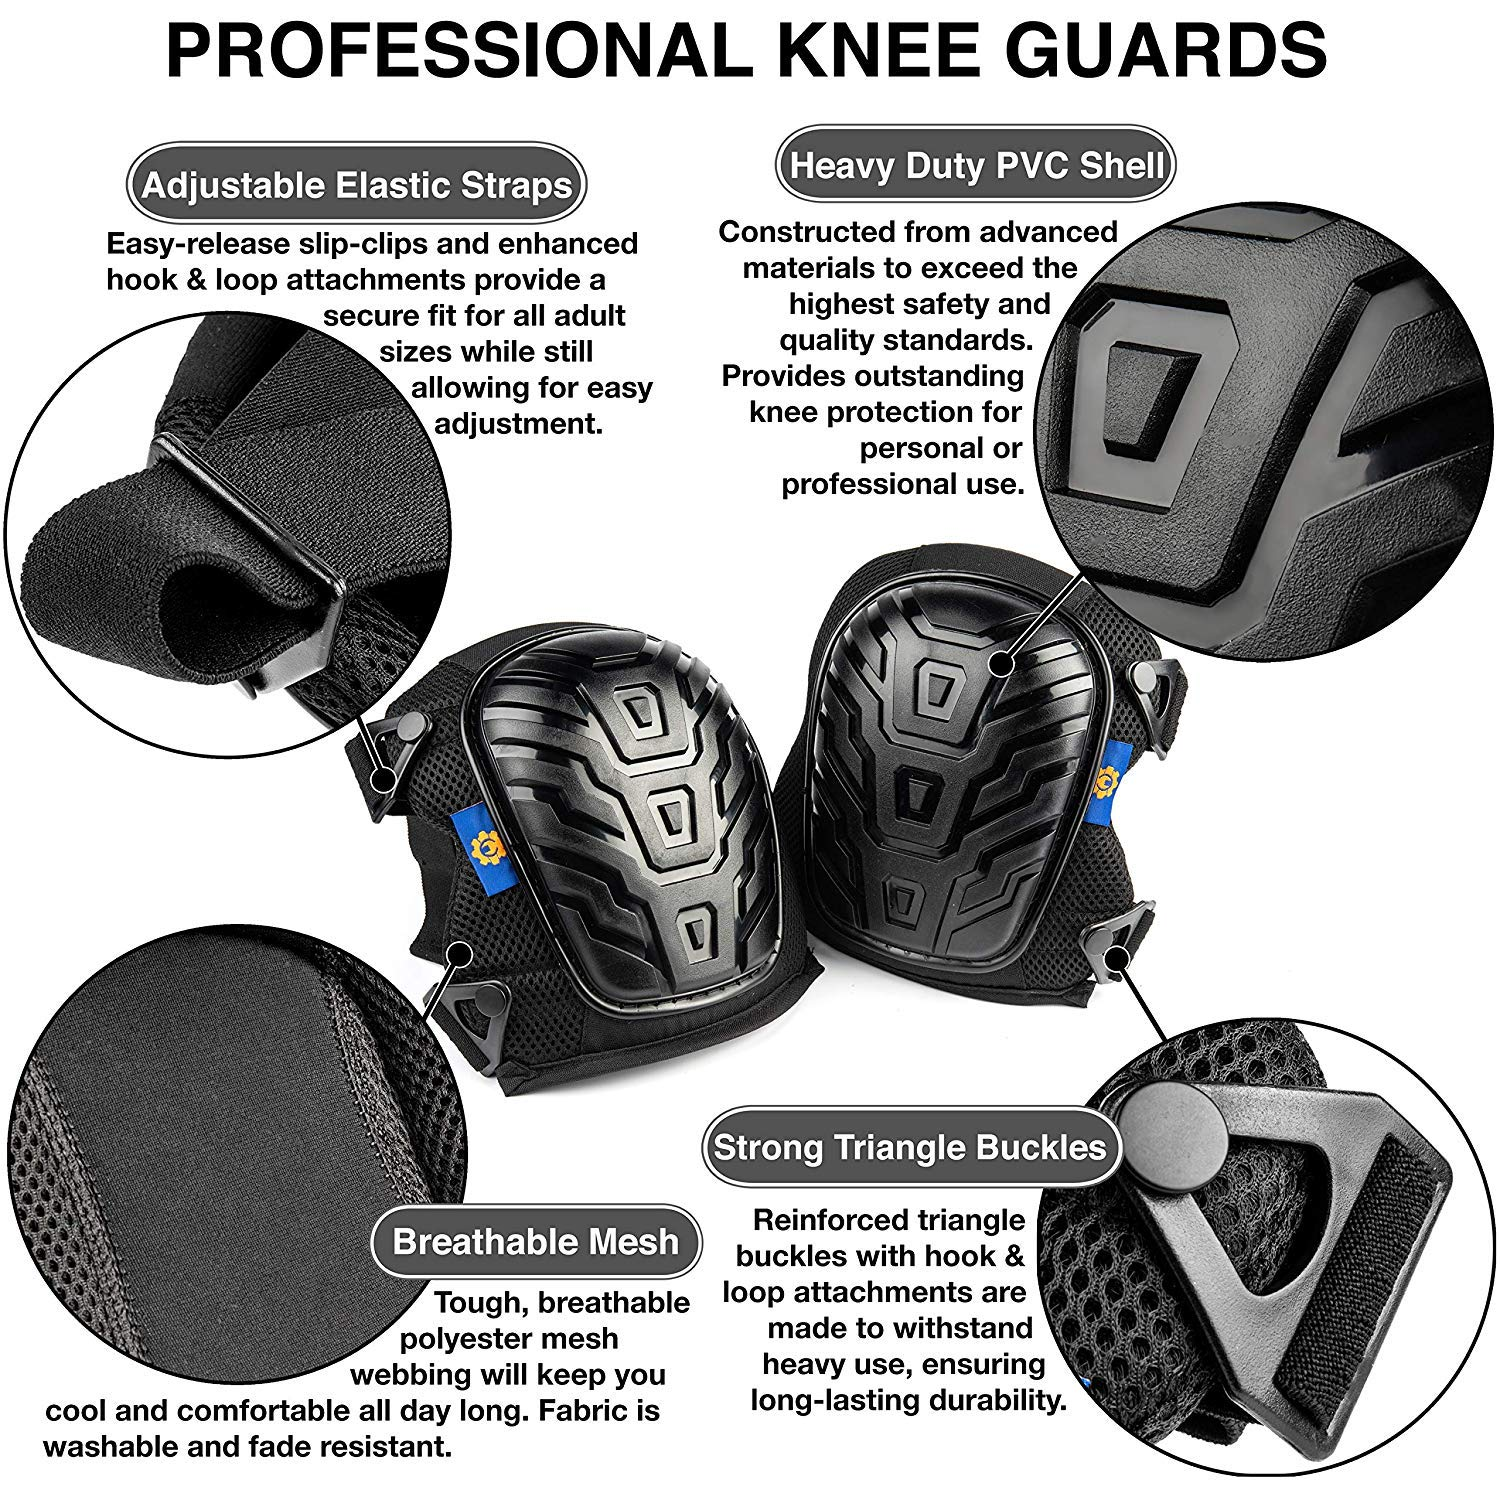 Rough Work Gear Professional Knee Pads - Built Tough To Last - Will Stay In Place All Day Long by Rough Work Gear (Image #2)